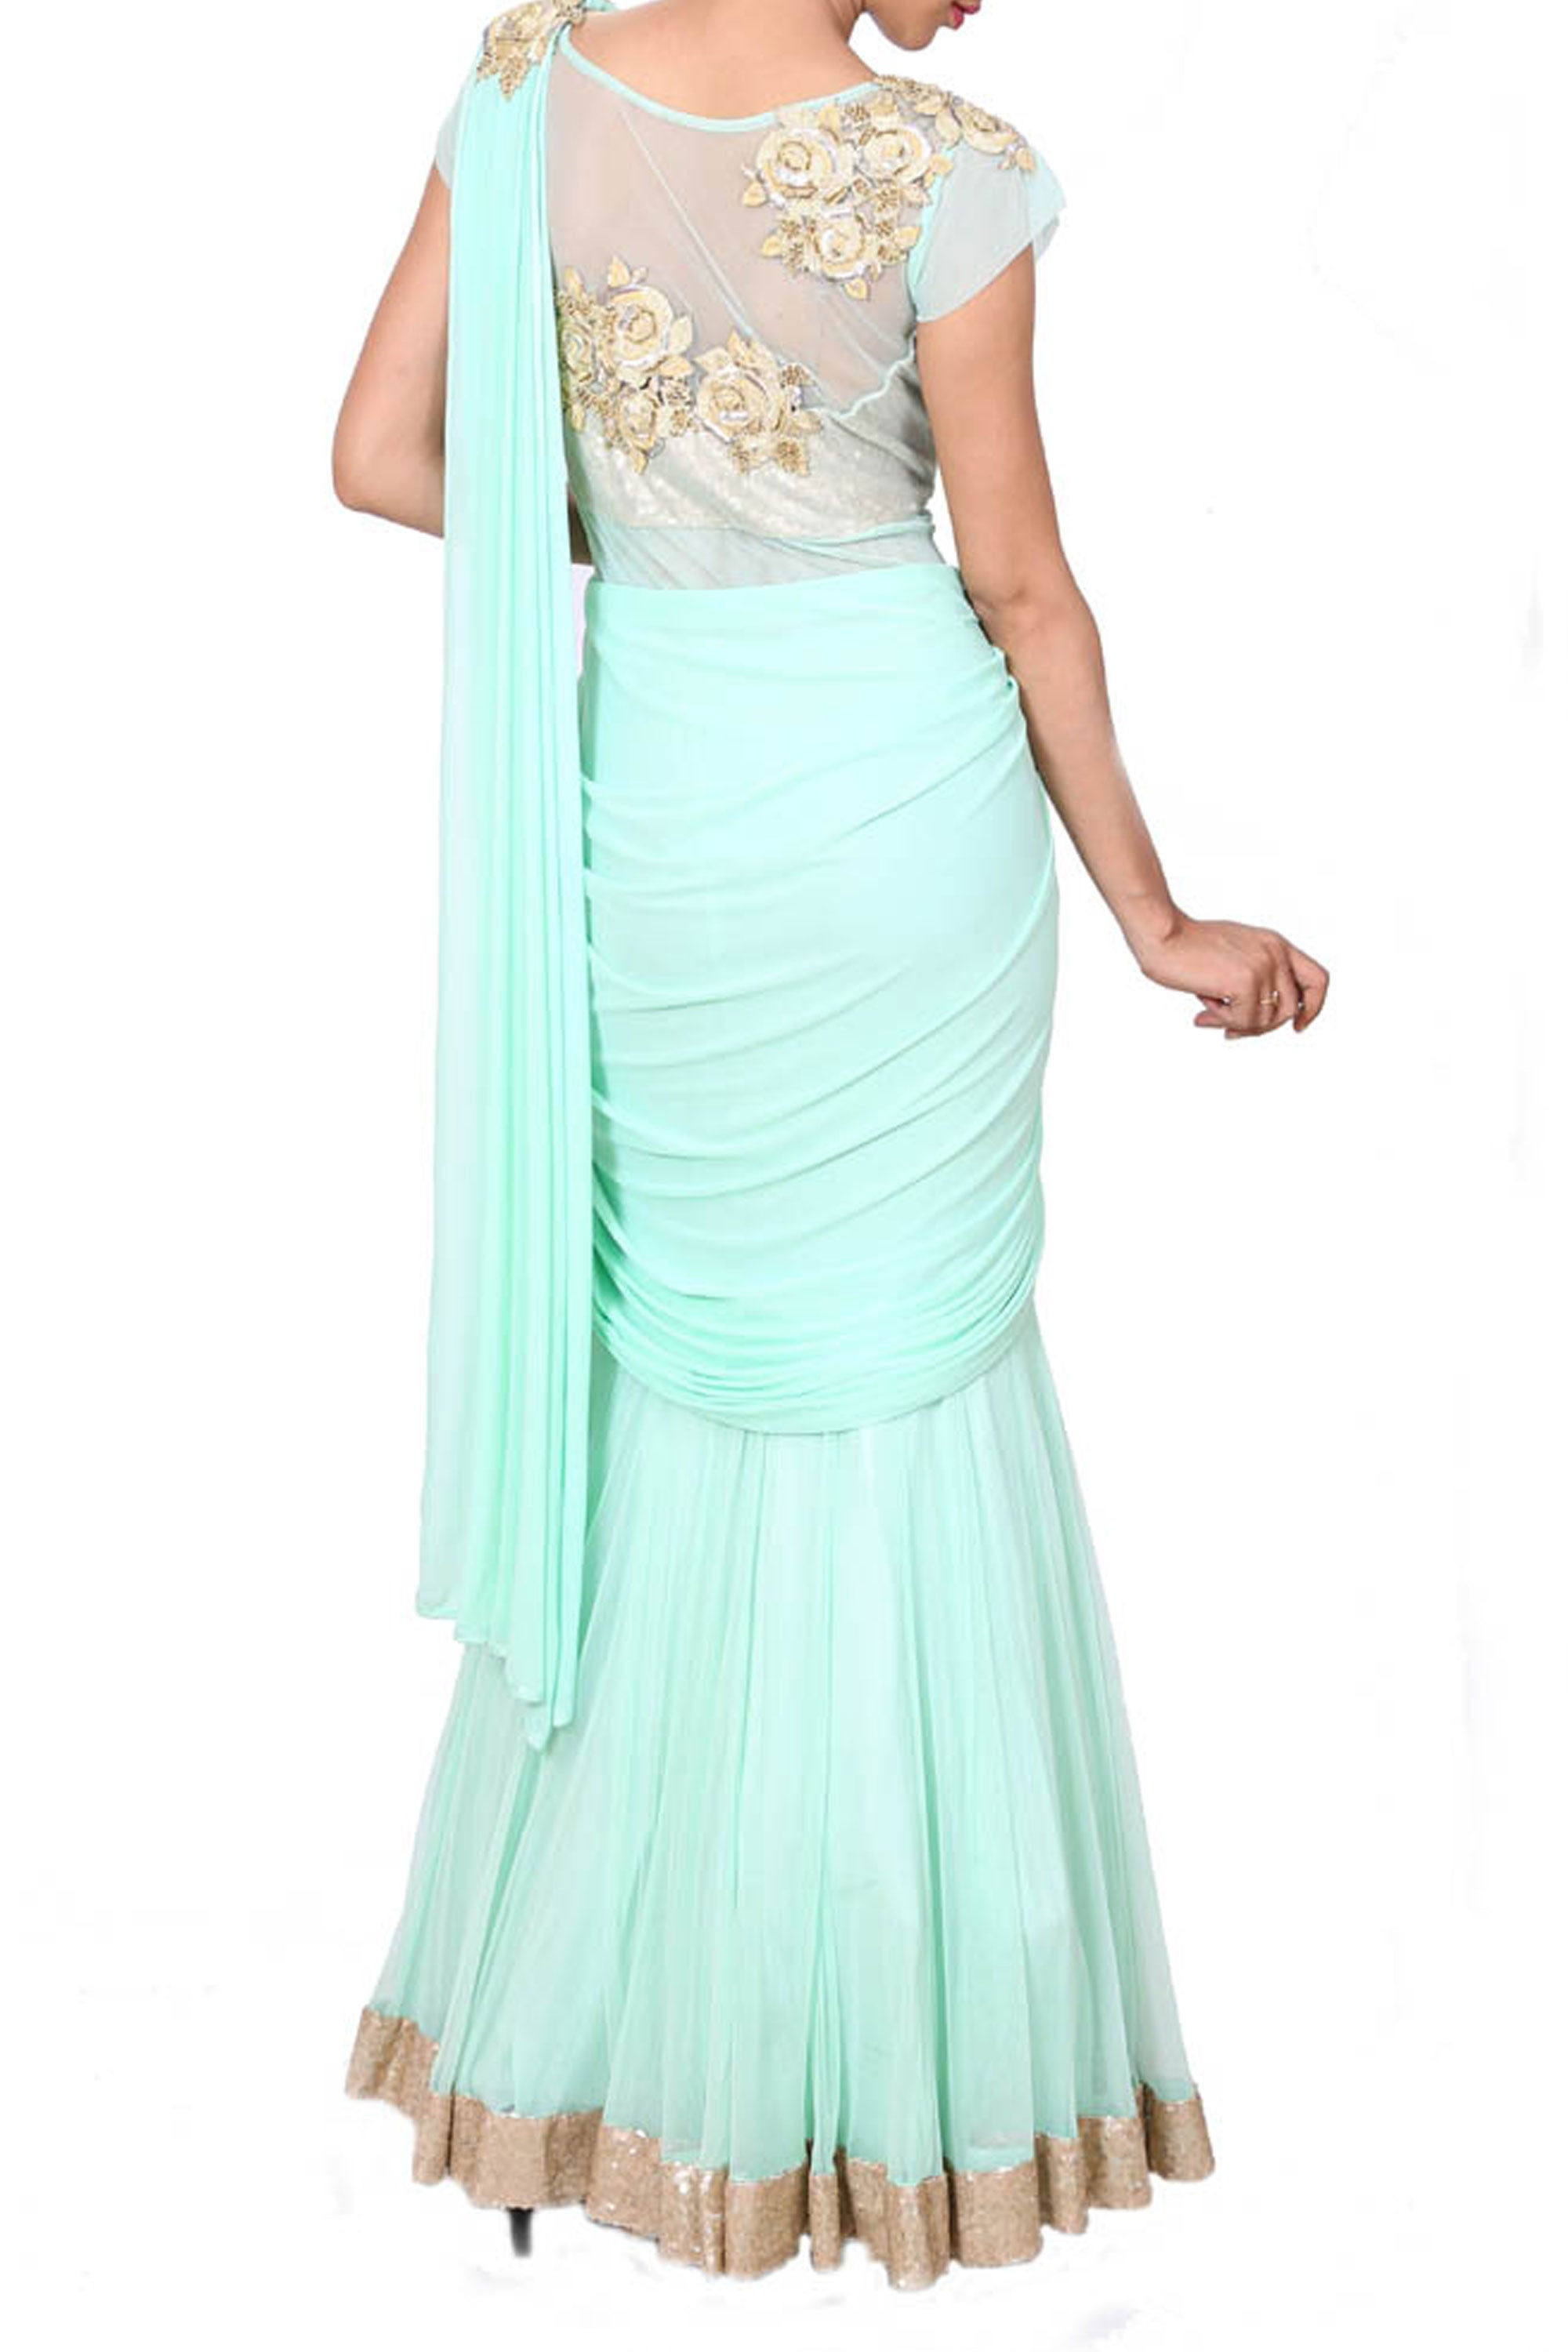 Embroidered Aqua Blue Gown In A Saree Style Drape Back